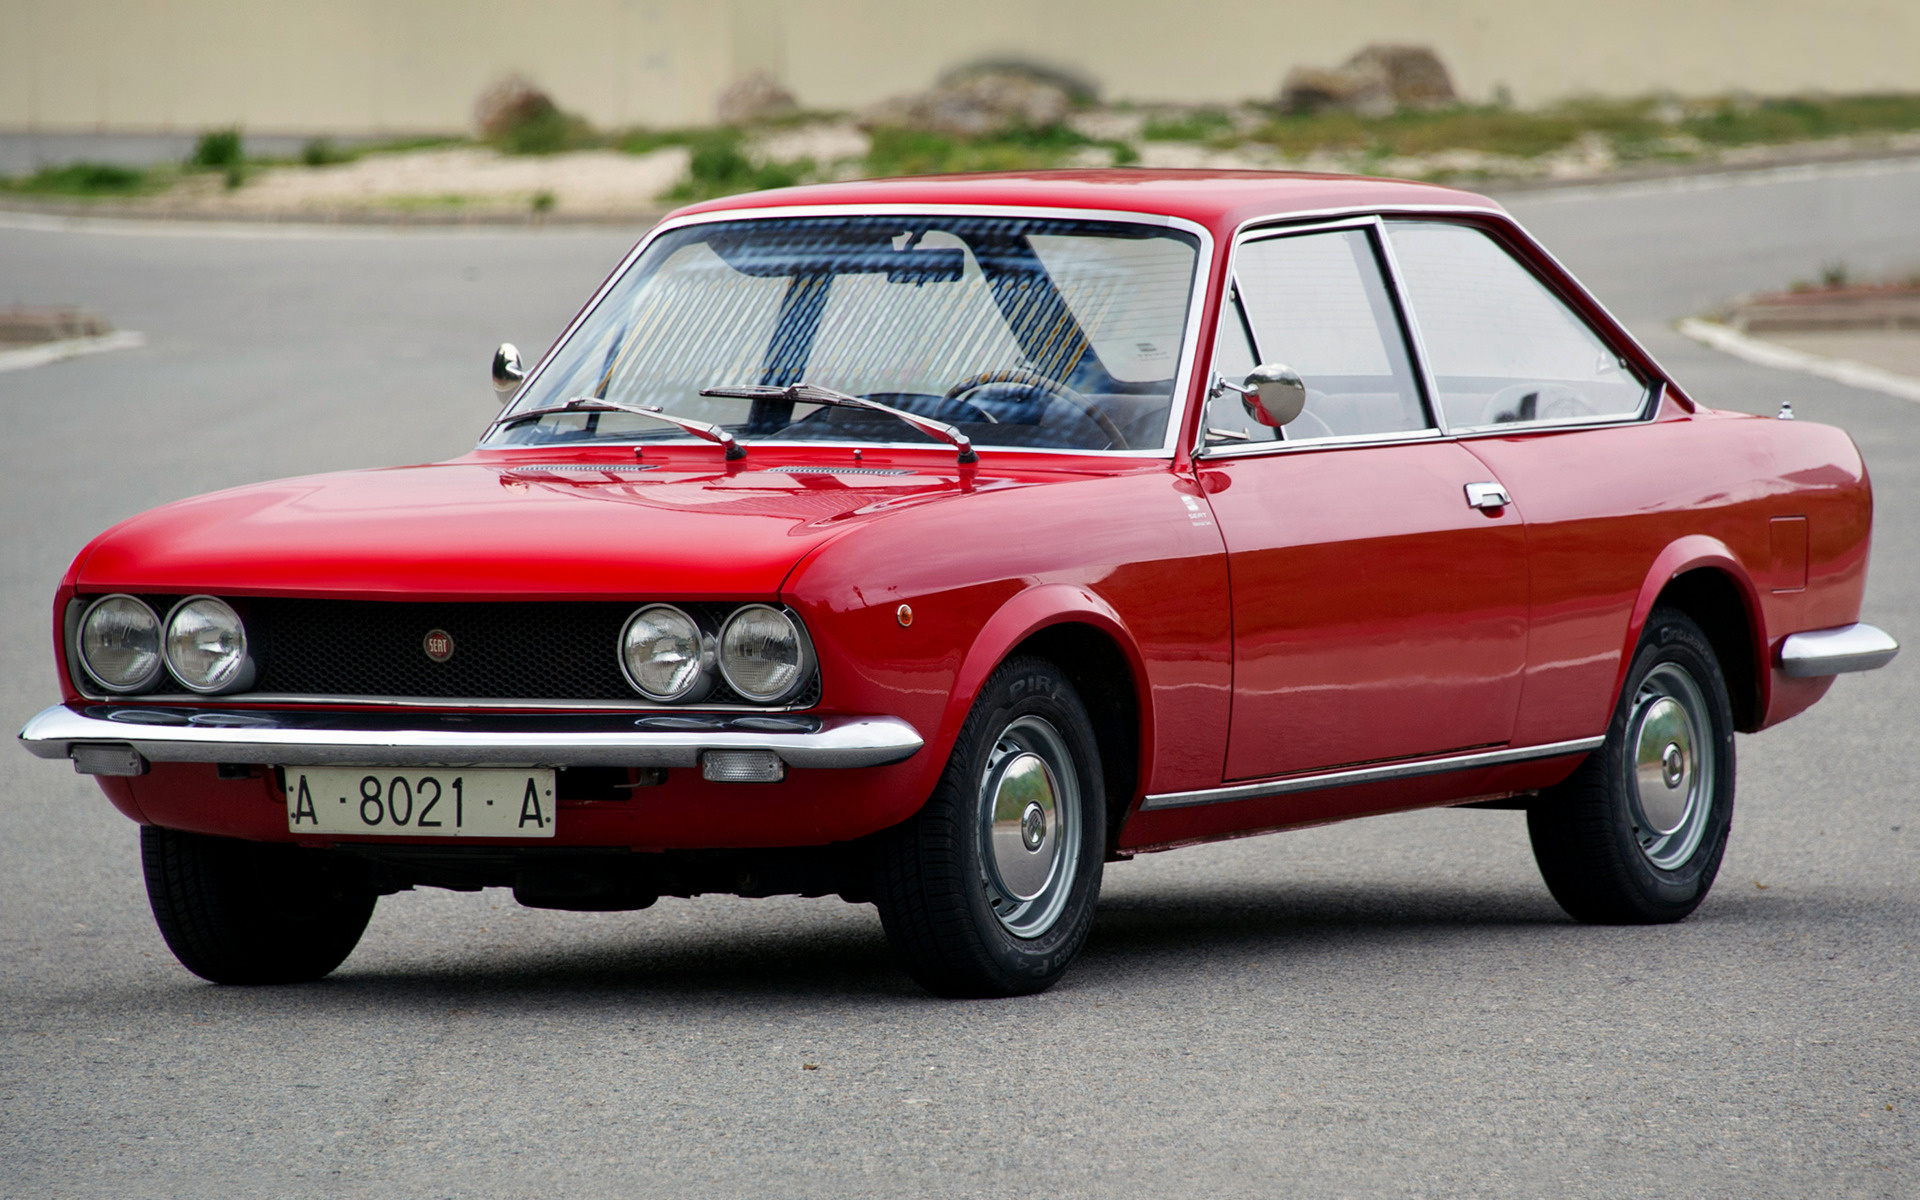 1970 Seat 124 Sport - Wallpapers and HD Images | Car Pixel